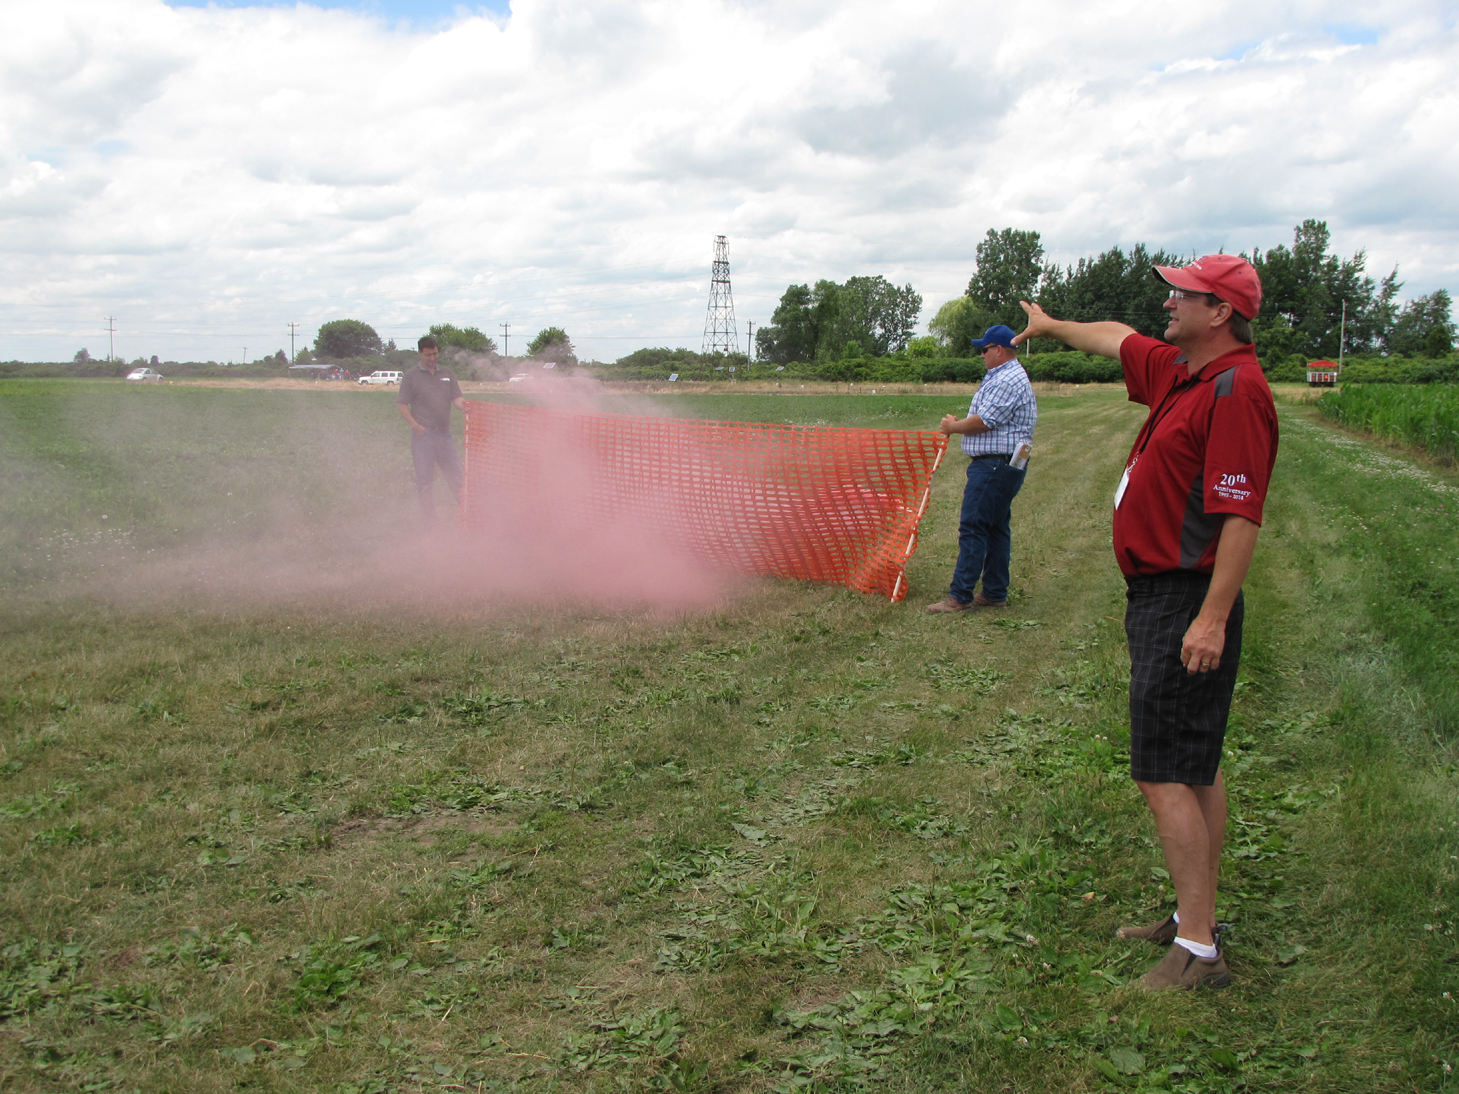 Prof. Doug Young demonstrated the effect of windbreaks on wind speeds